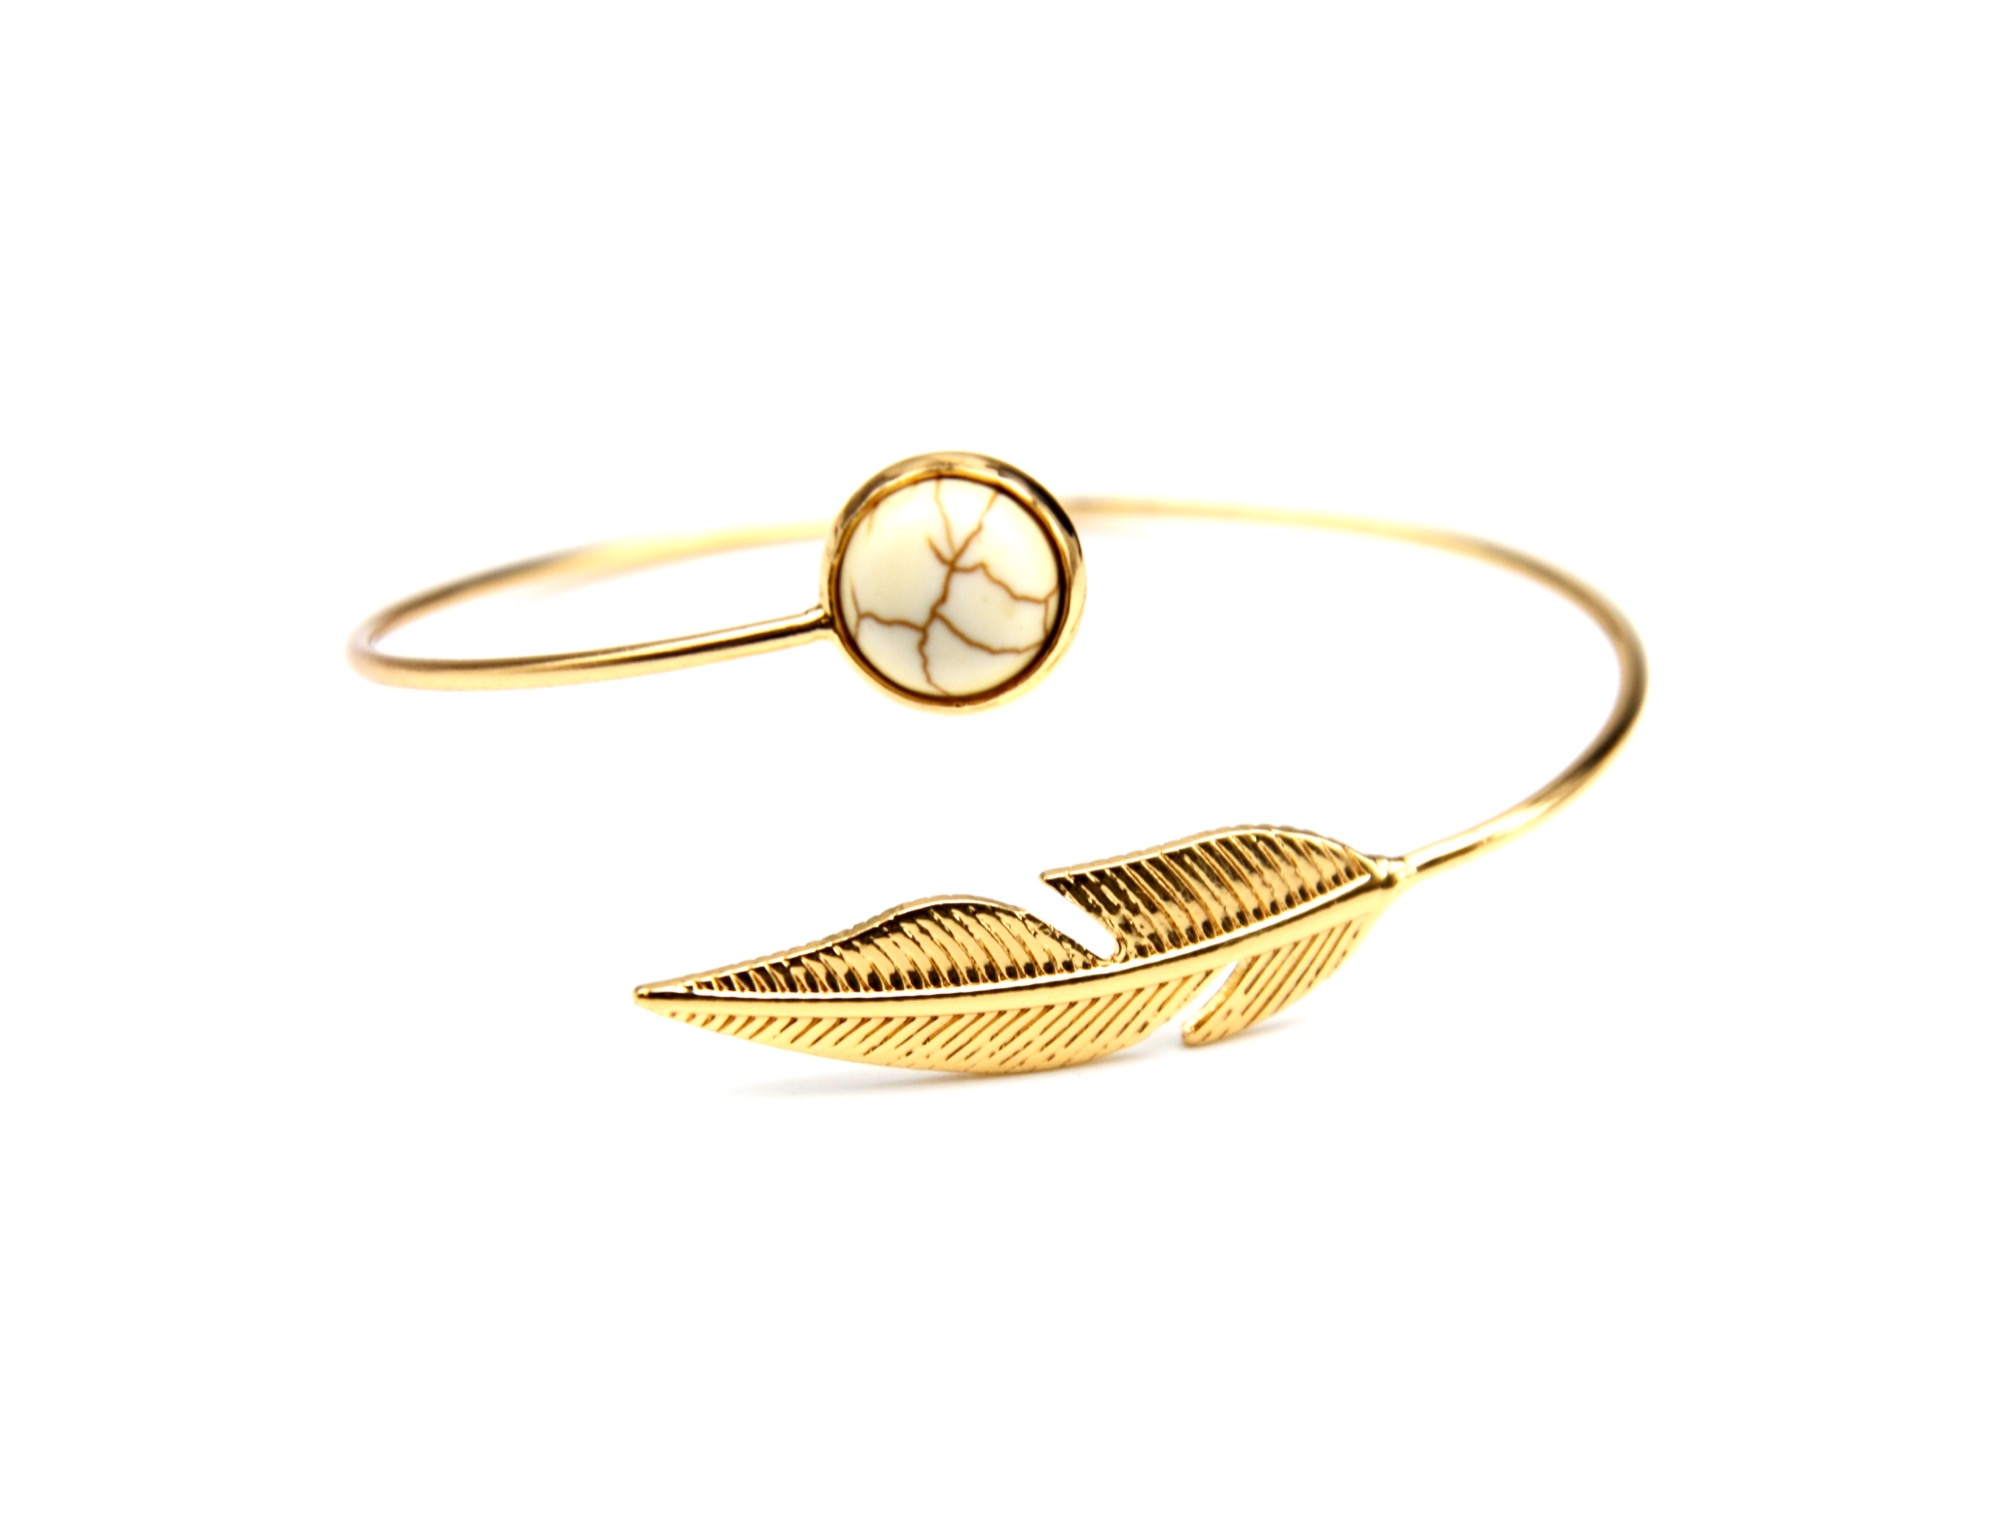 gold bangle rose tone kors open michael bangles cuff